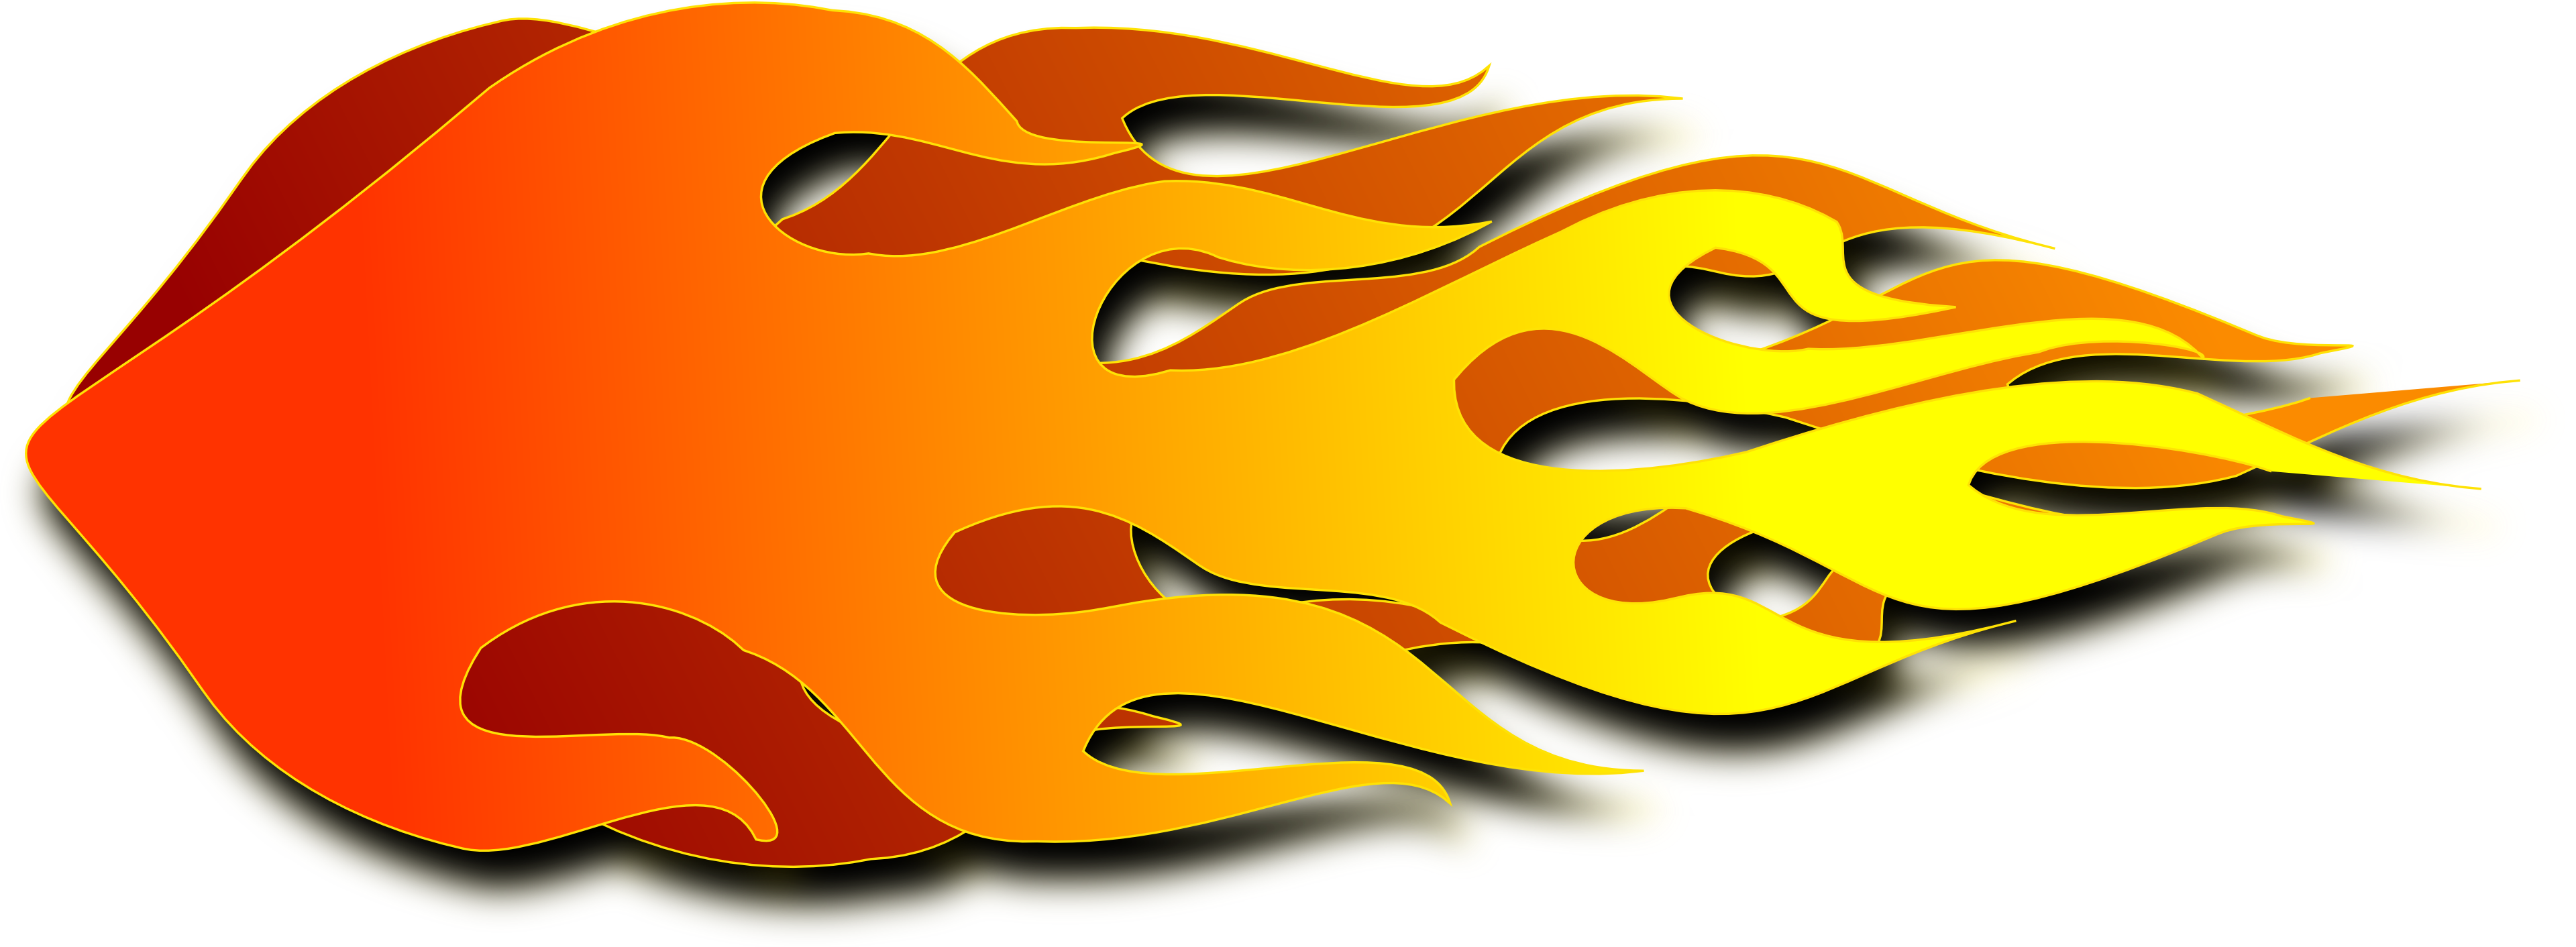 Clipart flames royalty free. Flame rocket engine clip